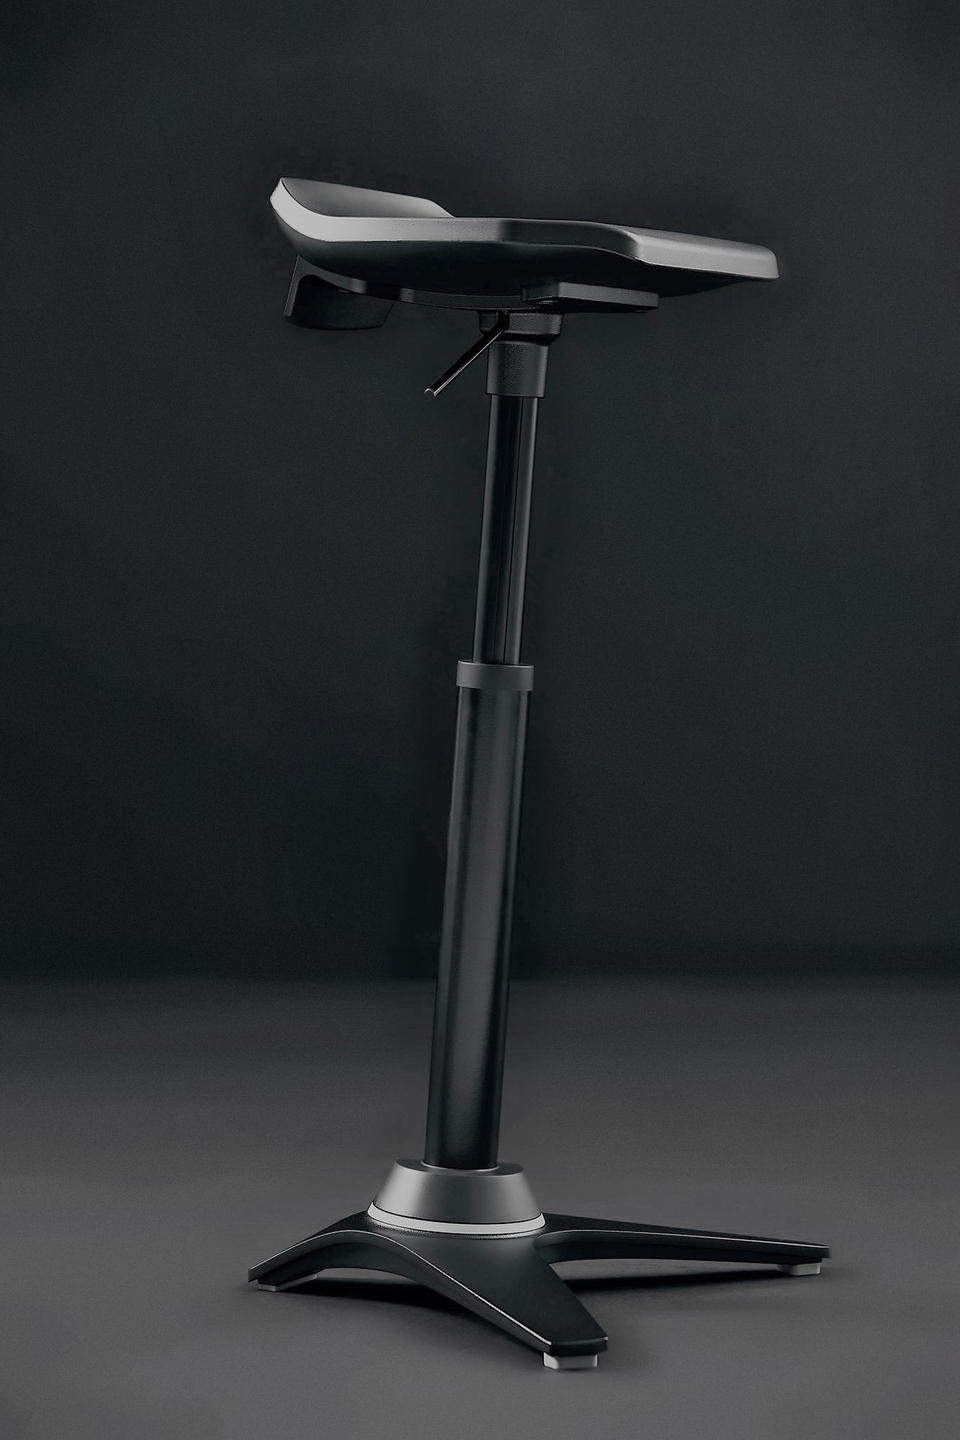 Aeris Muvman Industry | Active Sitting with Worktrainer | Sit-stand stool | Worktrainer.com